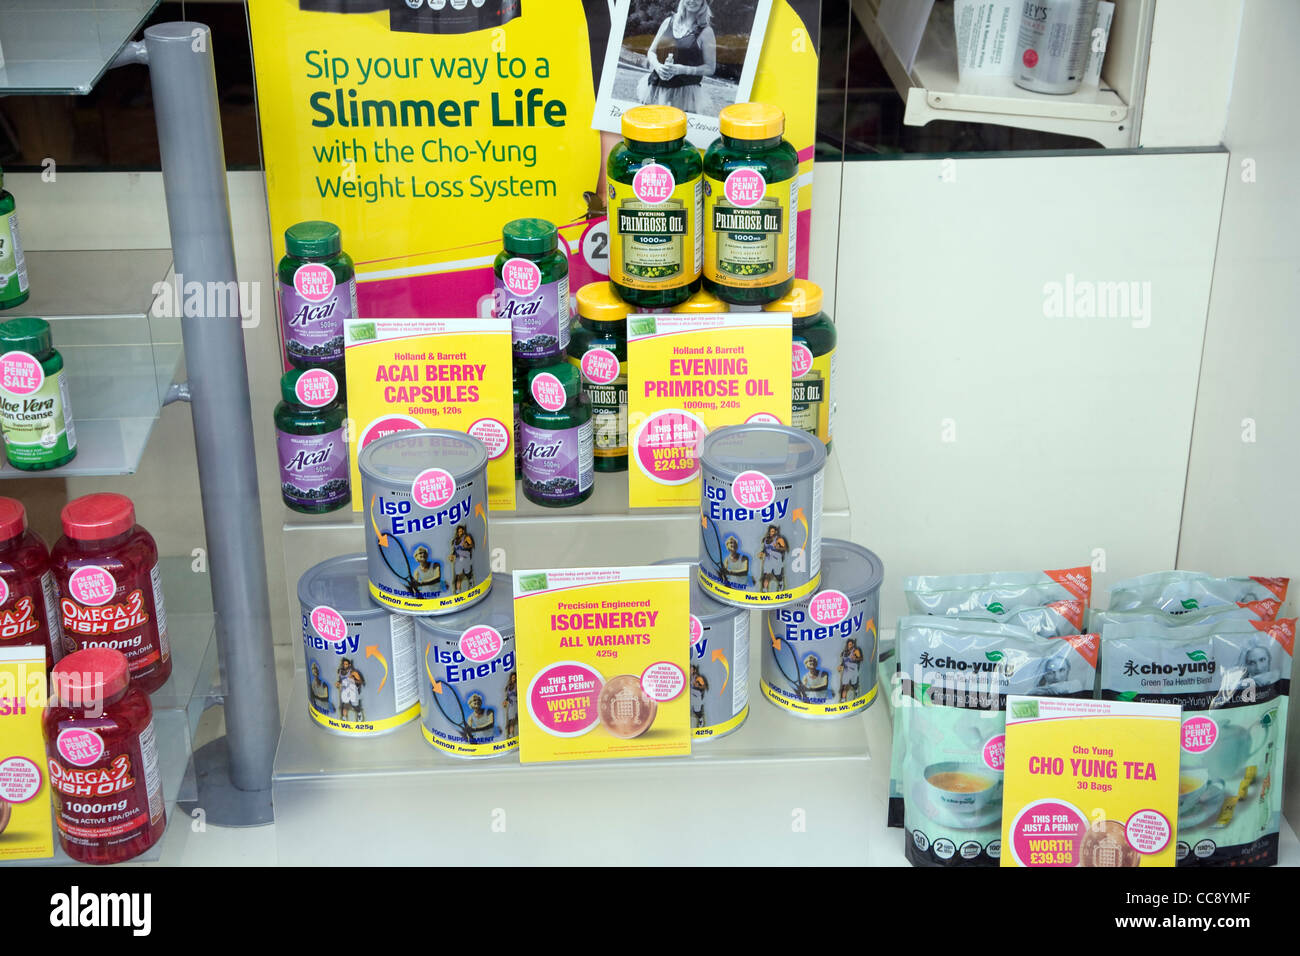 Slimming Products Stock Photos Slimming Products Stock Images Alamy